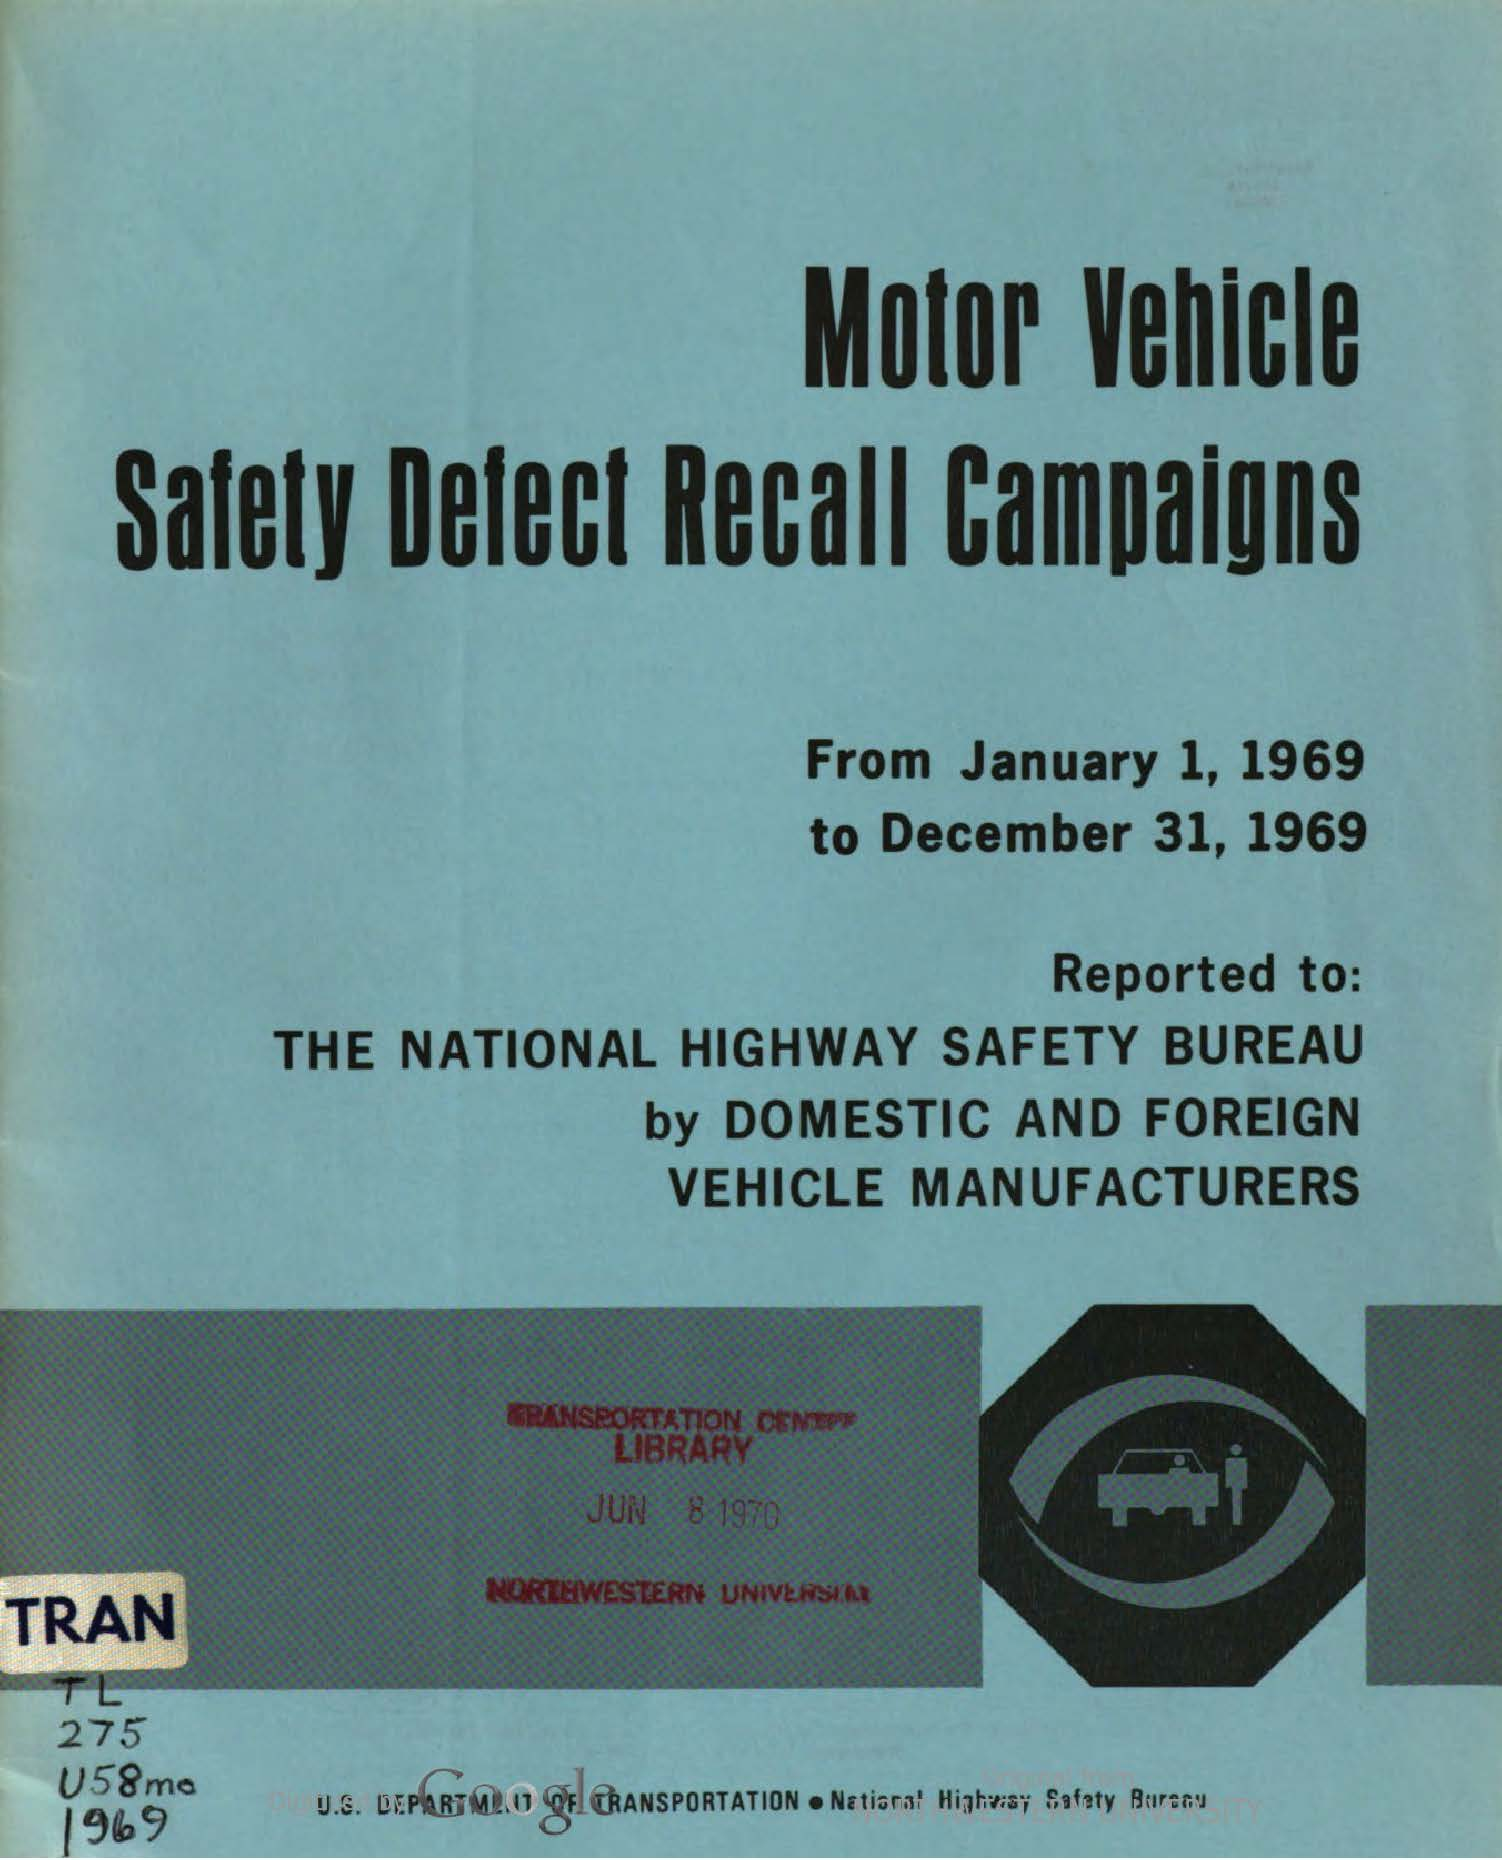 Motor vehicle safety defect recall campaigns 1969